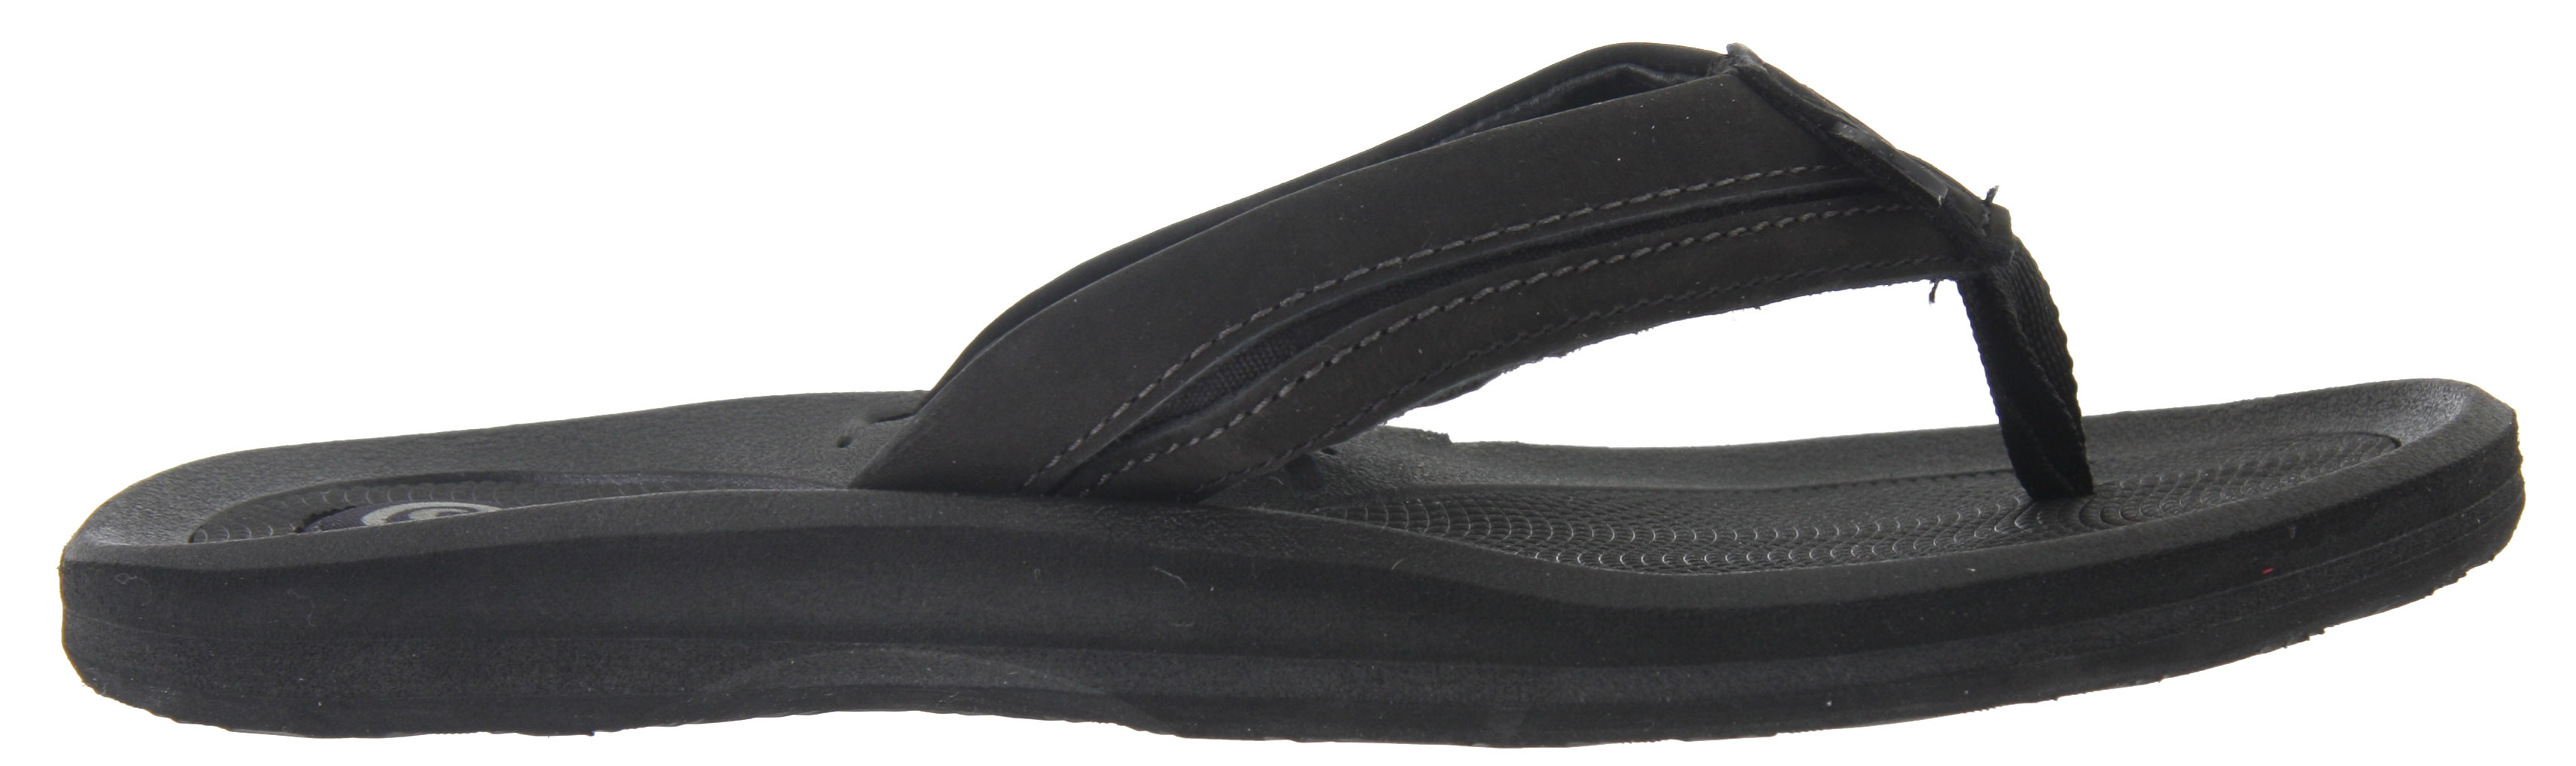 Surf Key Features of the Rafters Tsunami Leather Sandals : Nubuck leather upper lined with pigskin Soft textured EVA footbed Heel cushion Arch support - $14.95